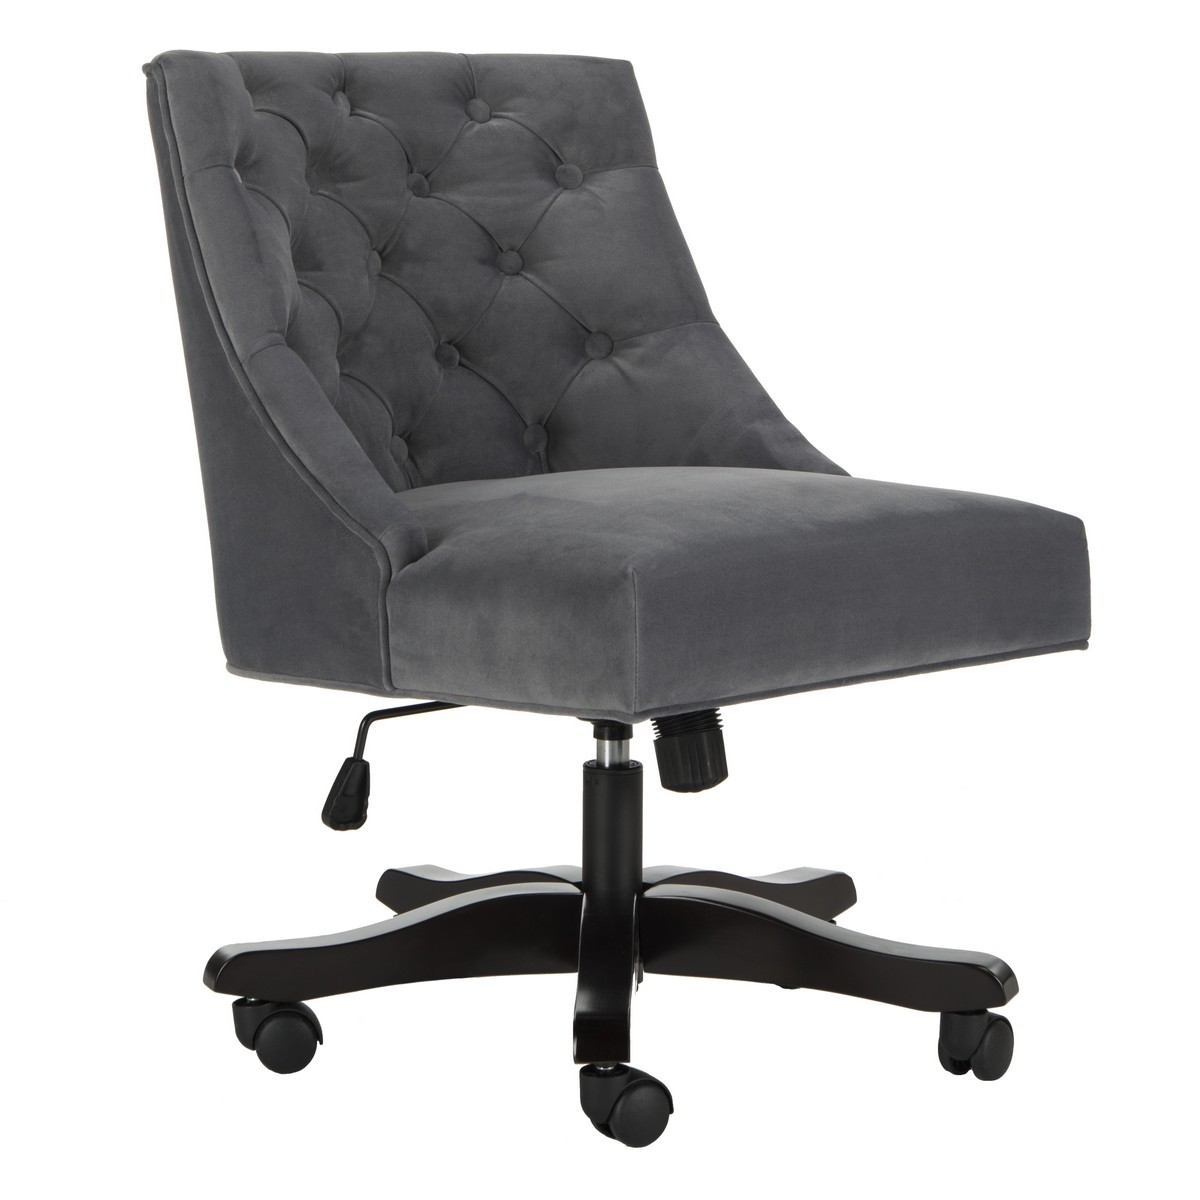 Desk Chairs I Office Chairs I Computer Chairs Safaviehcom - Grey office chair